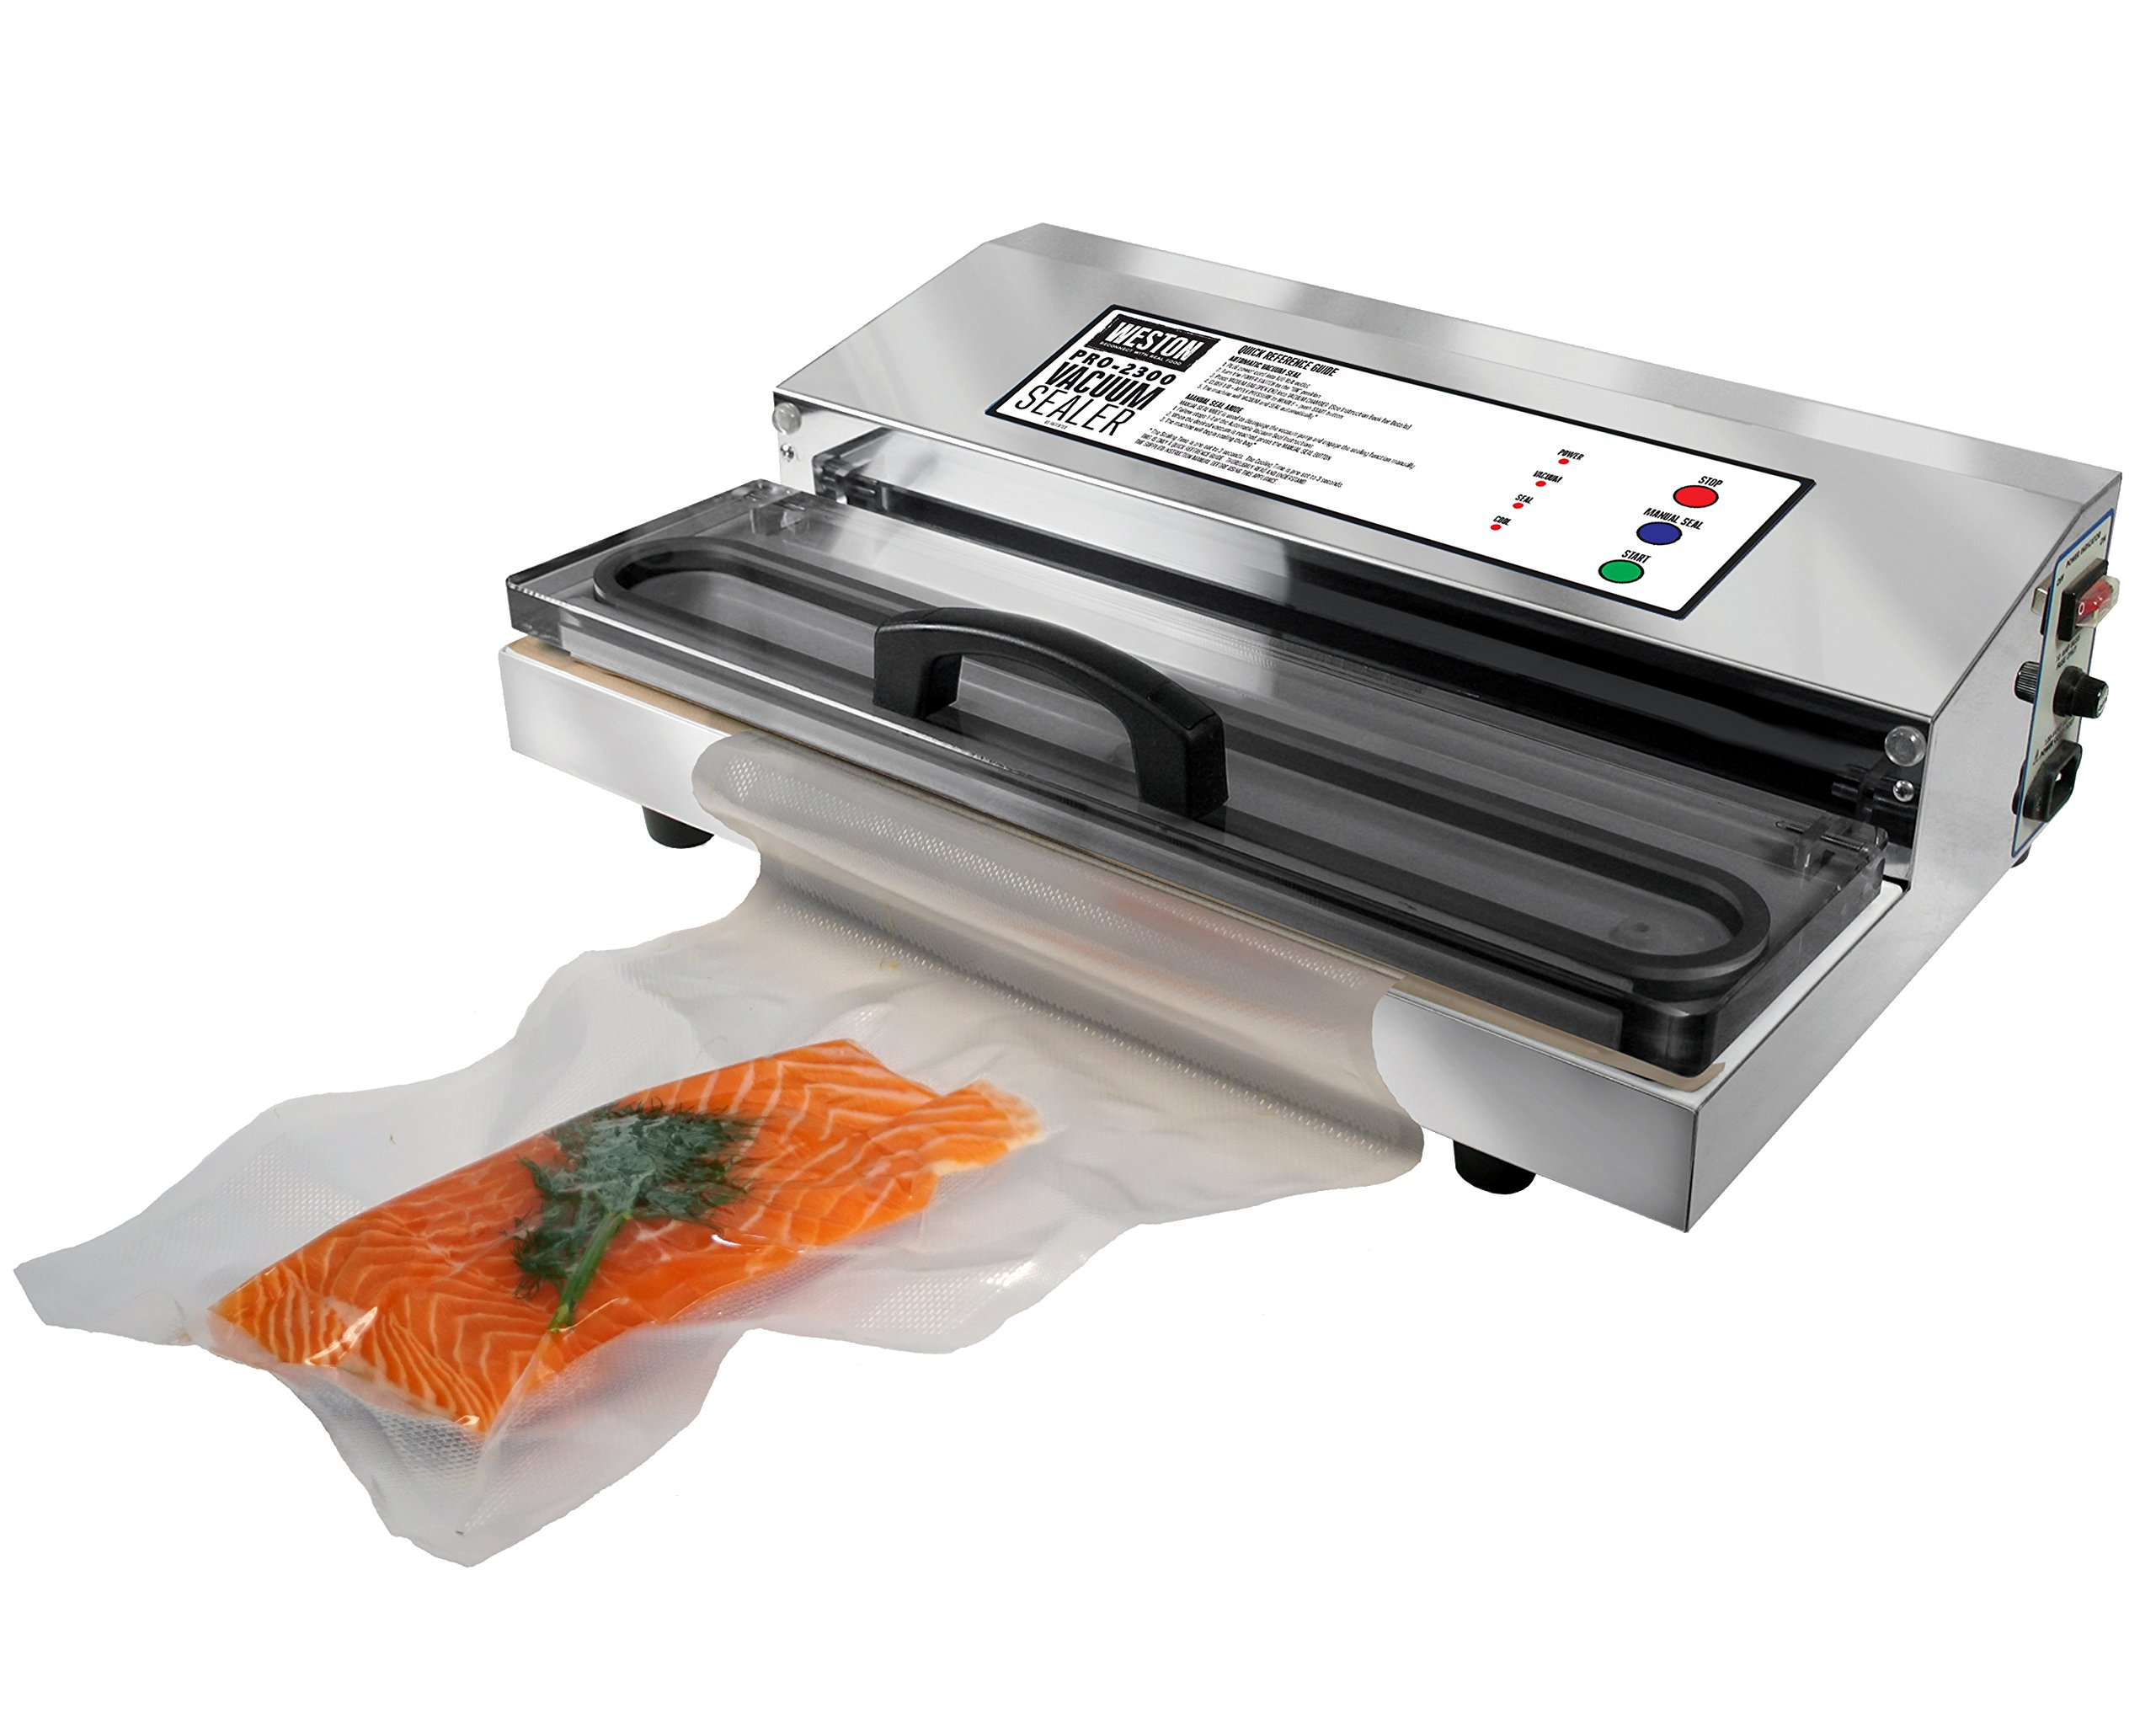 Weston Pro-2300 Commercial Grade Stainless Steel Vacuum Sealer (65-0201), Double Piston Pump by Weston (Image #8)